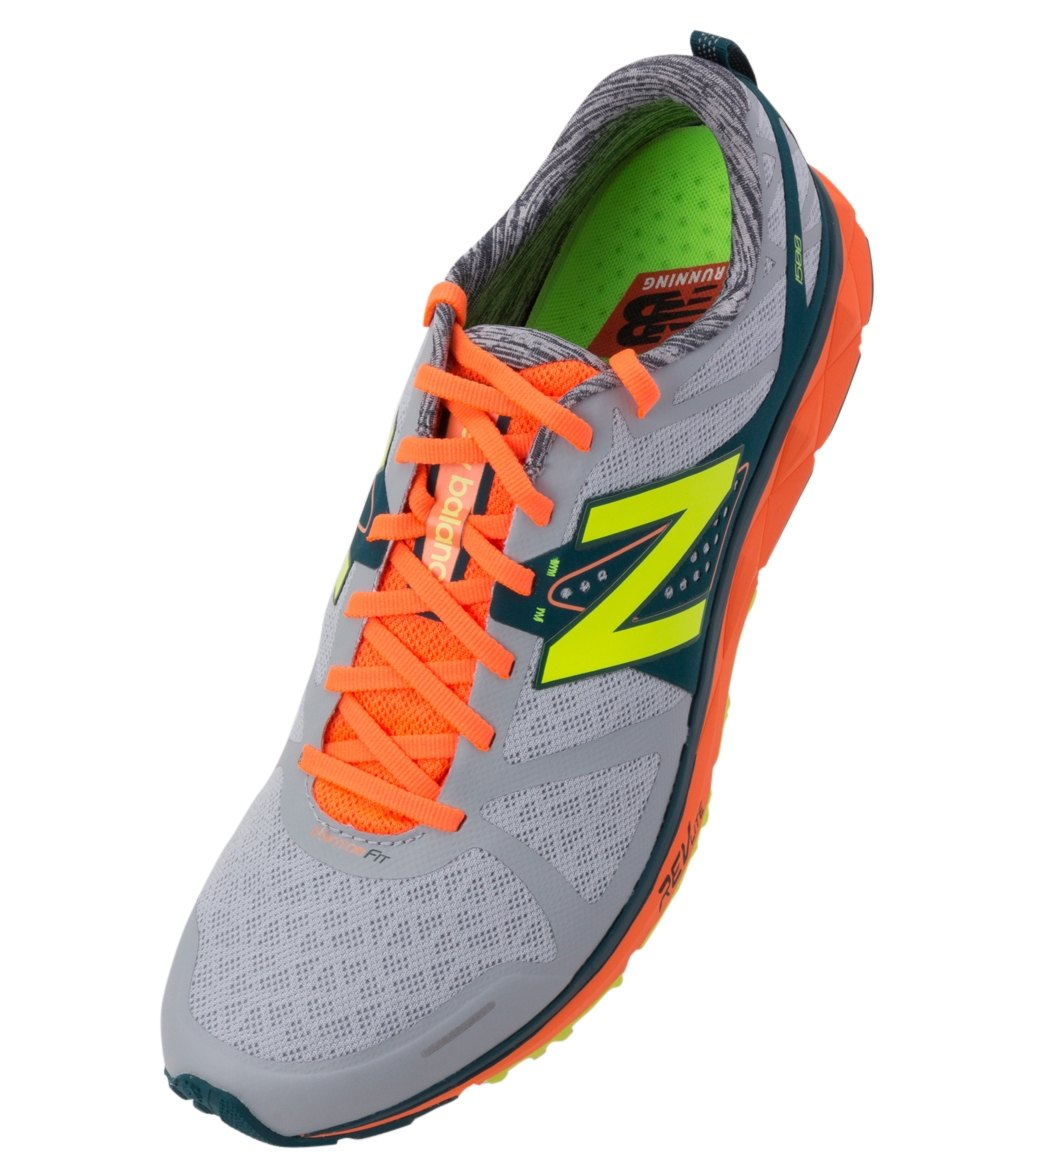 new balance athletic shoes answer donotsend Tackle your workouts with confidence in performance running shoes and stylish clothes from new balance our athletic footwear goes the distance with you.